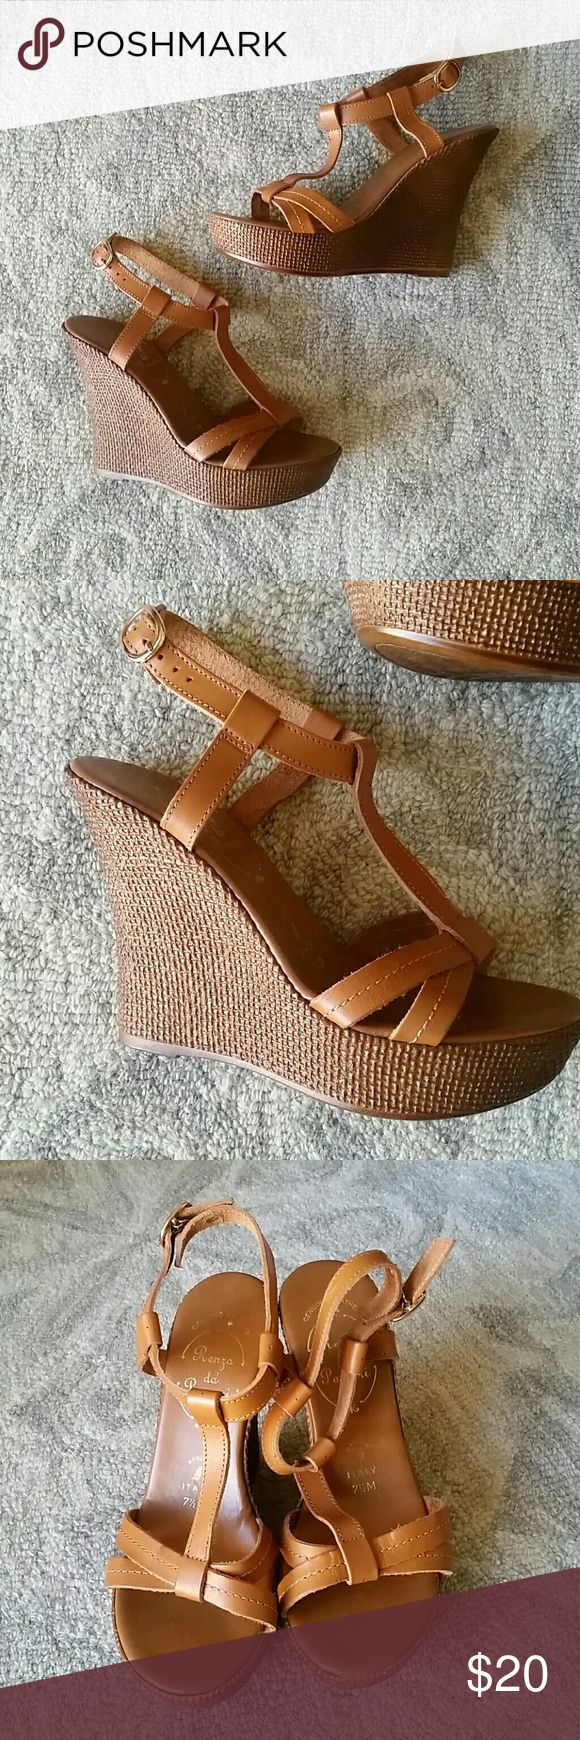 "NWOT Italian-made Leather Platform Wedges, 7.5 Cute and sexy sky-high strappy camel colored platform wedges. Upper is real leather. Sole is synthetic, has a natural cross hatch / woven look and is lightweight. Wear these all spring and summer! Neutral color makes them super versatile.   Platform: 1.25"" Heel: 4.75""  New without tags. (Re-Posh, turned out to be too tall for me) :) Renza da Parcari Shoes Wedges"